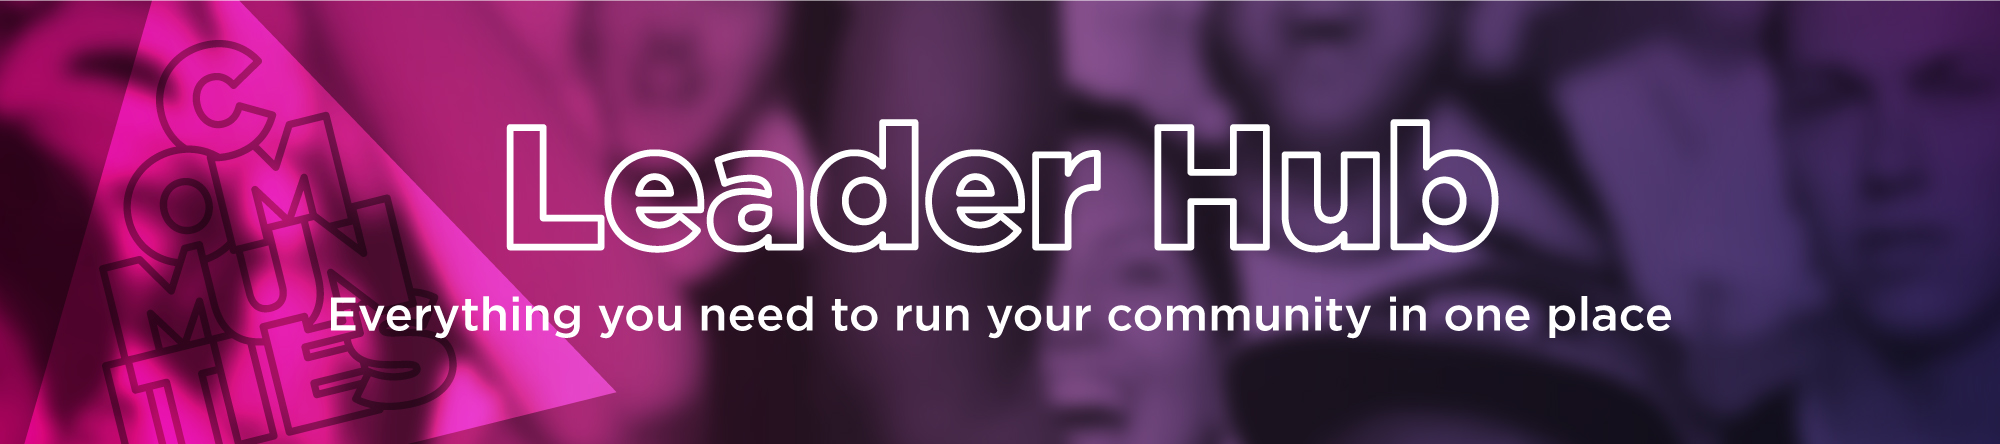 Leader Hub - Everything you need to run your community in one place